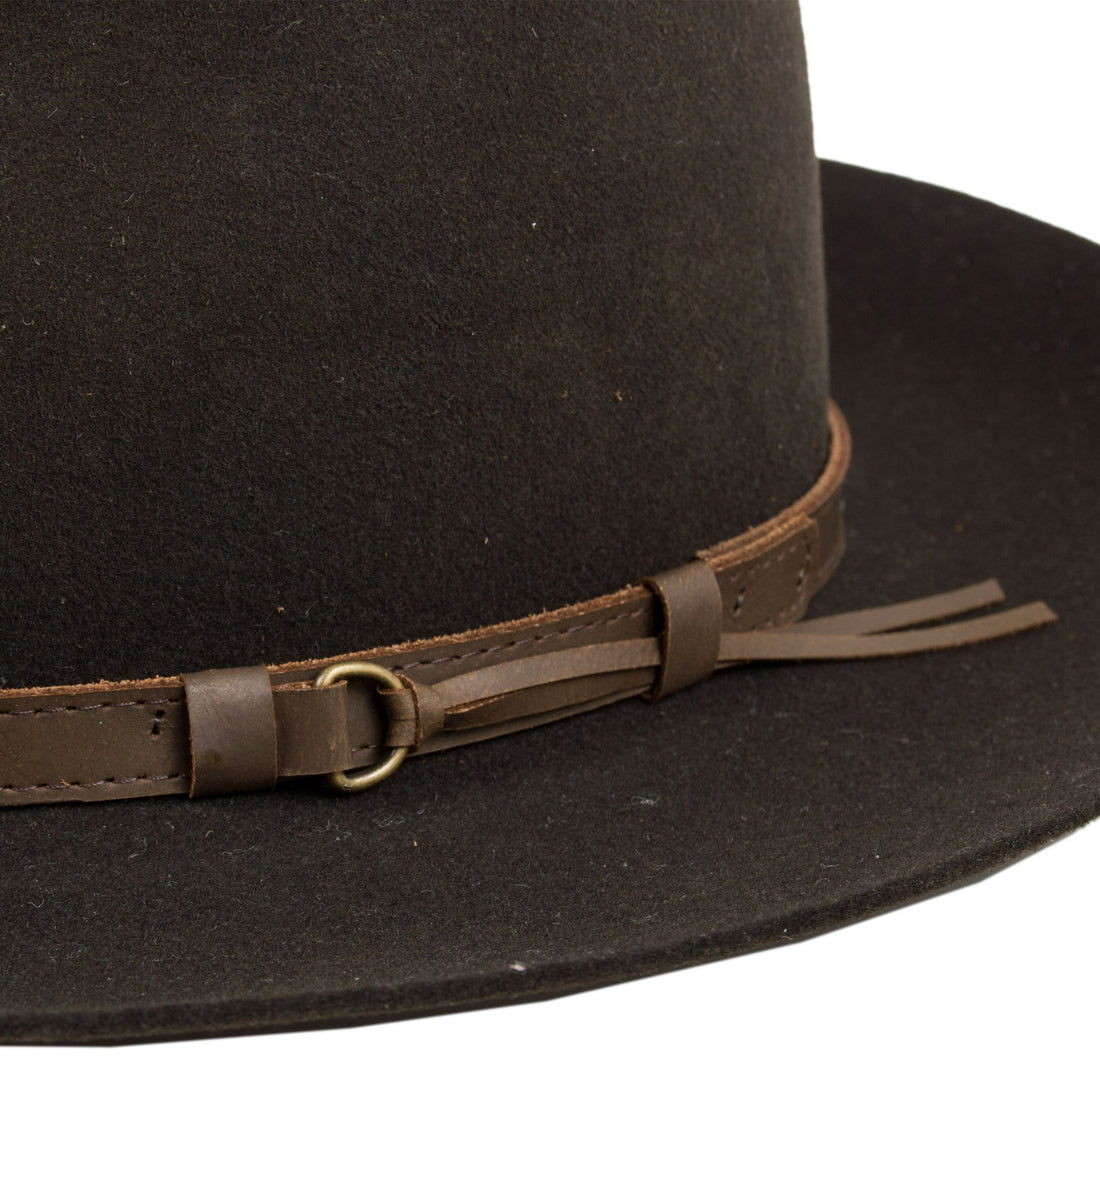 Tin Pan Hat - Accessories: Headwear: Men's - Iron and Resin